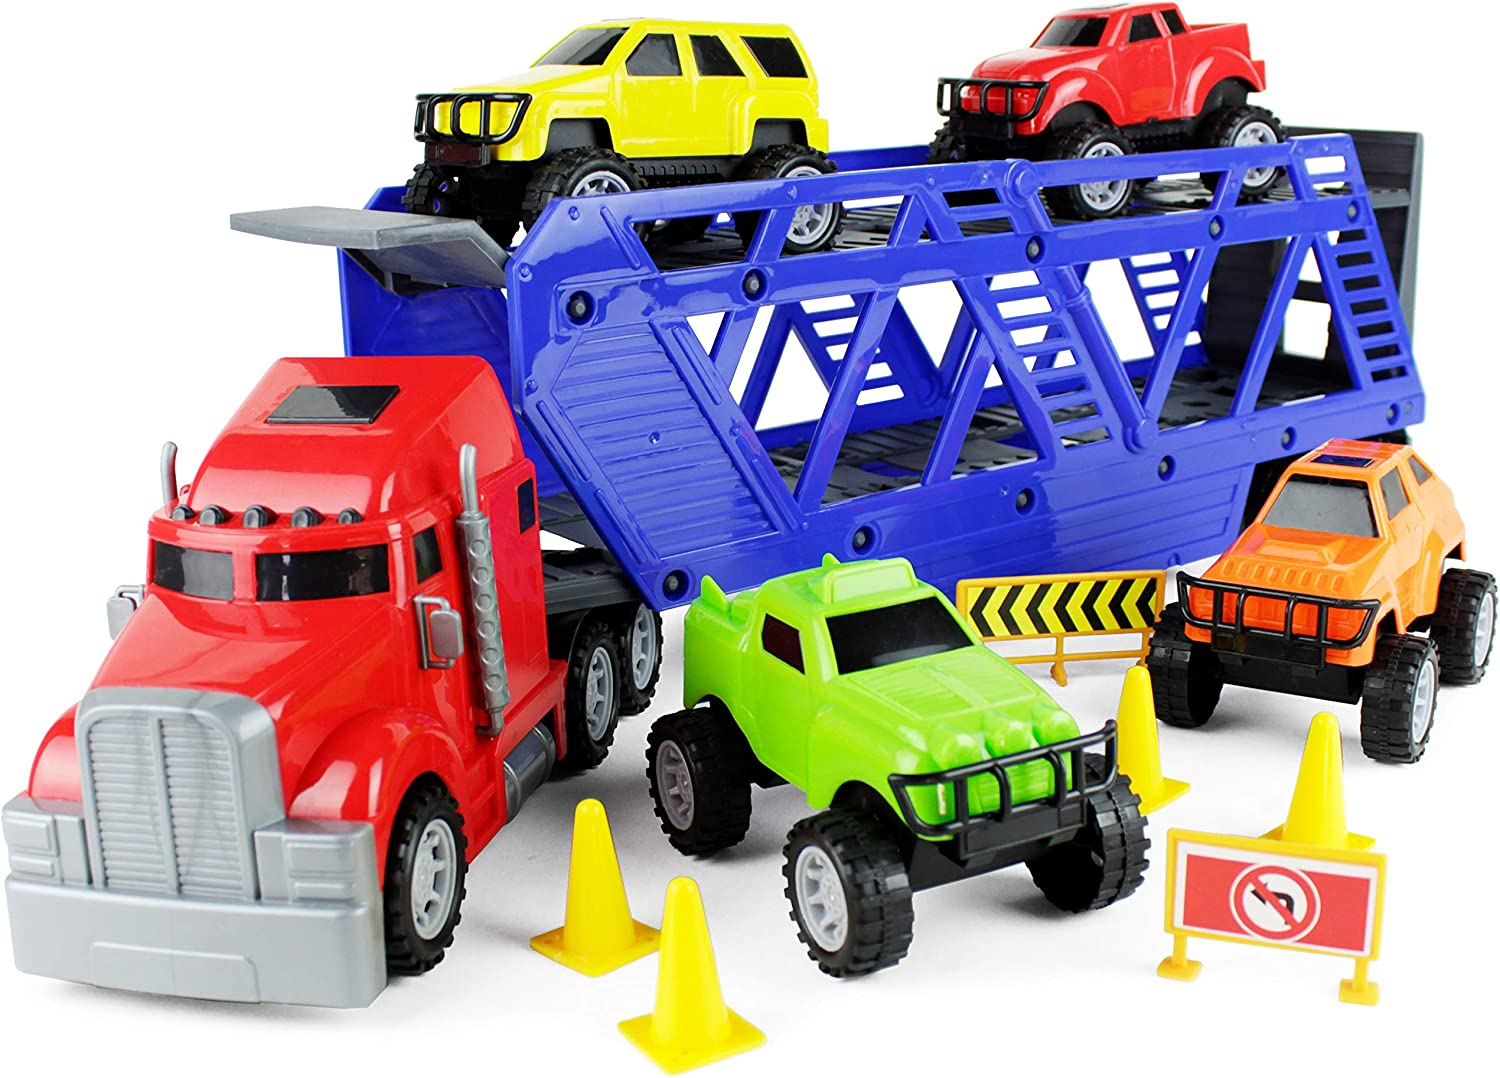 Boley 5-in-1 Big Rig Hauler Truck Carrier Toy - Complete Trailer with Construction Toys and Accessories - Great Toy for Boys, Girls who Love Cars and Trucks!